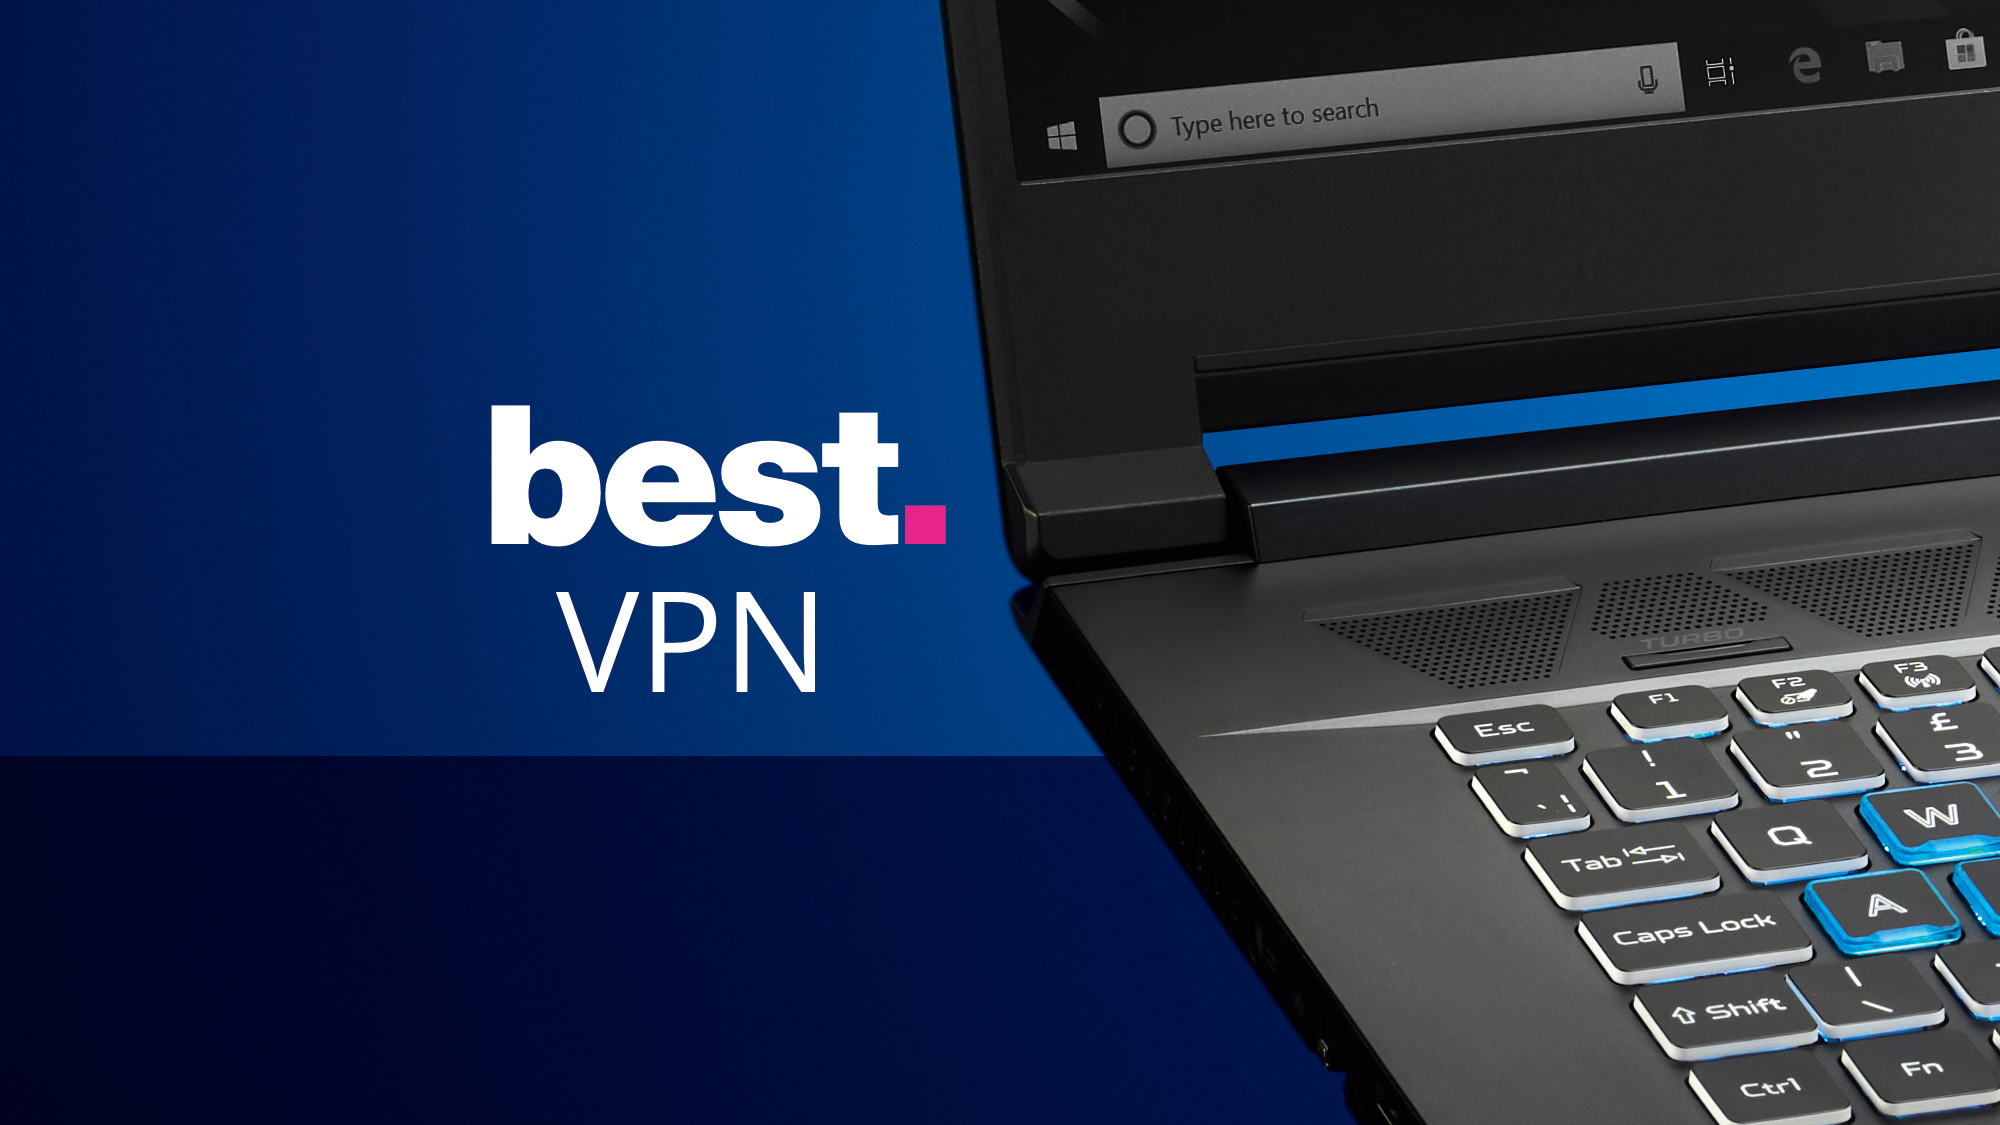 Important considerations for picking a good VPN provider